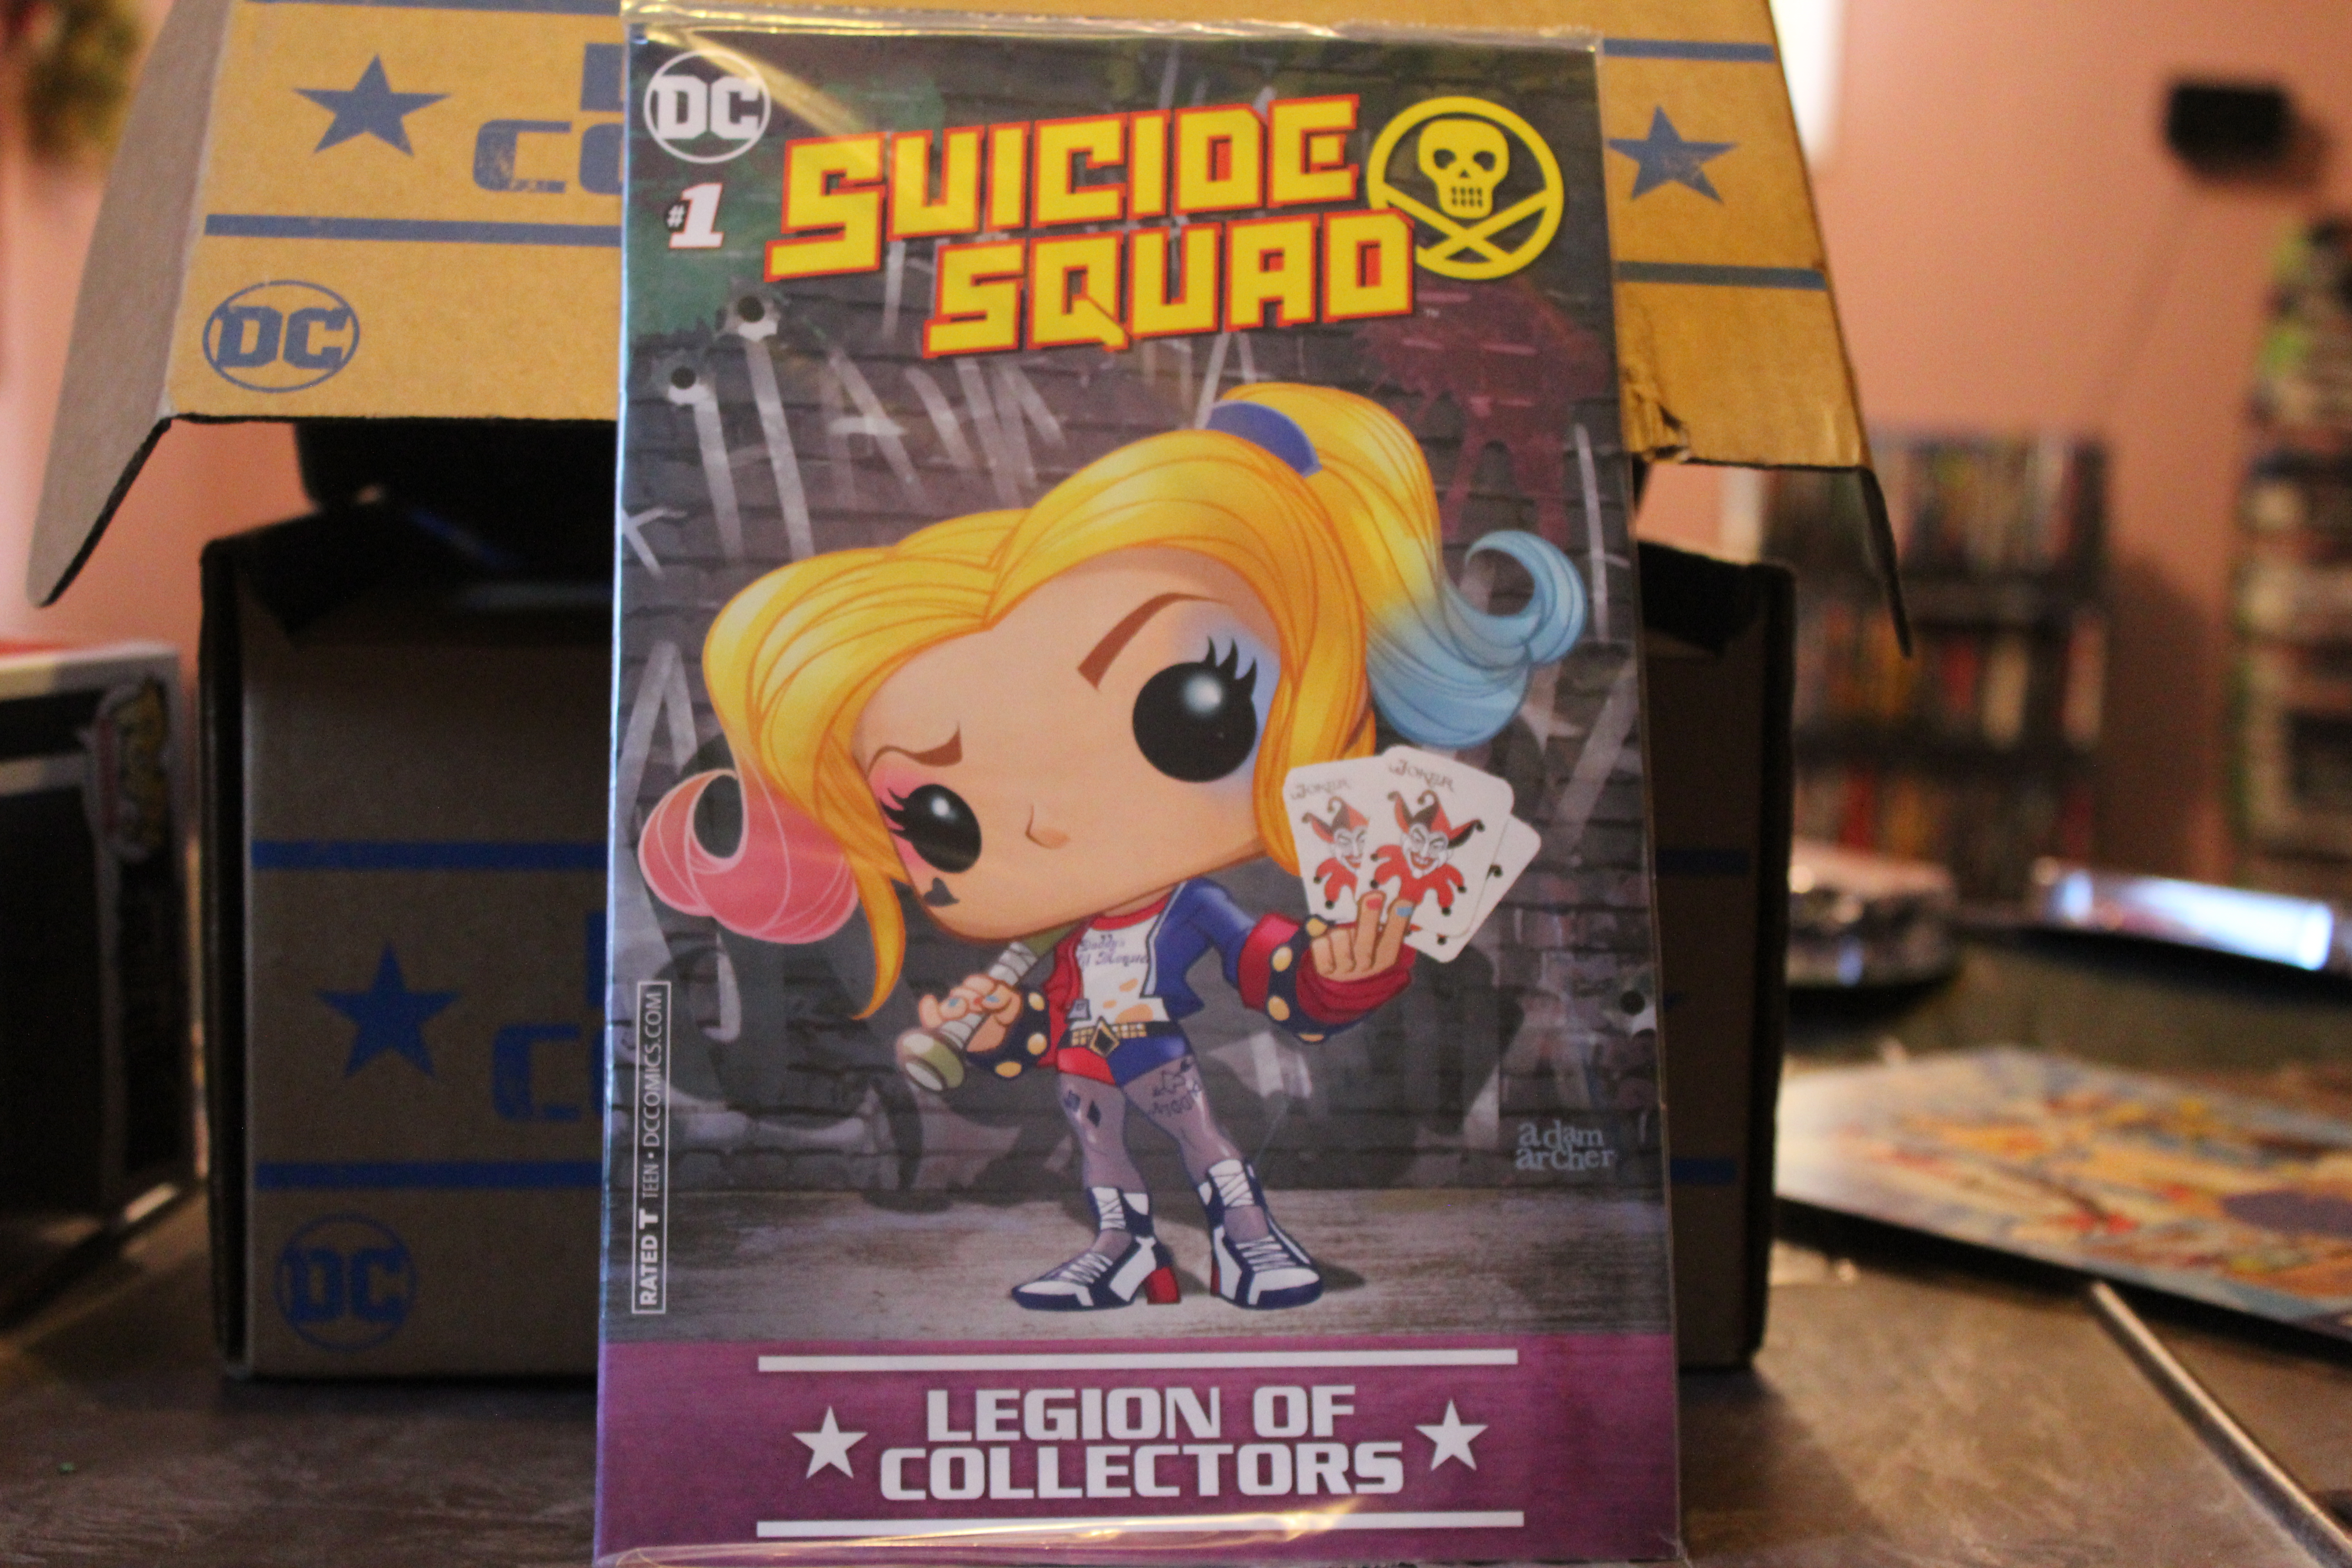 SUICIDE SQUAD # 1 HARLEY QUINN FUNKO POP VARIANT LEGION OF COLLECTORS COMIC NEW